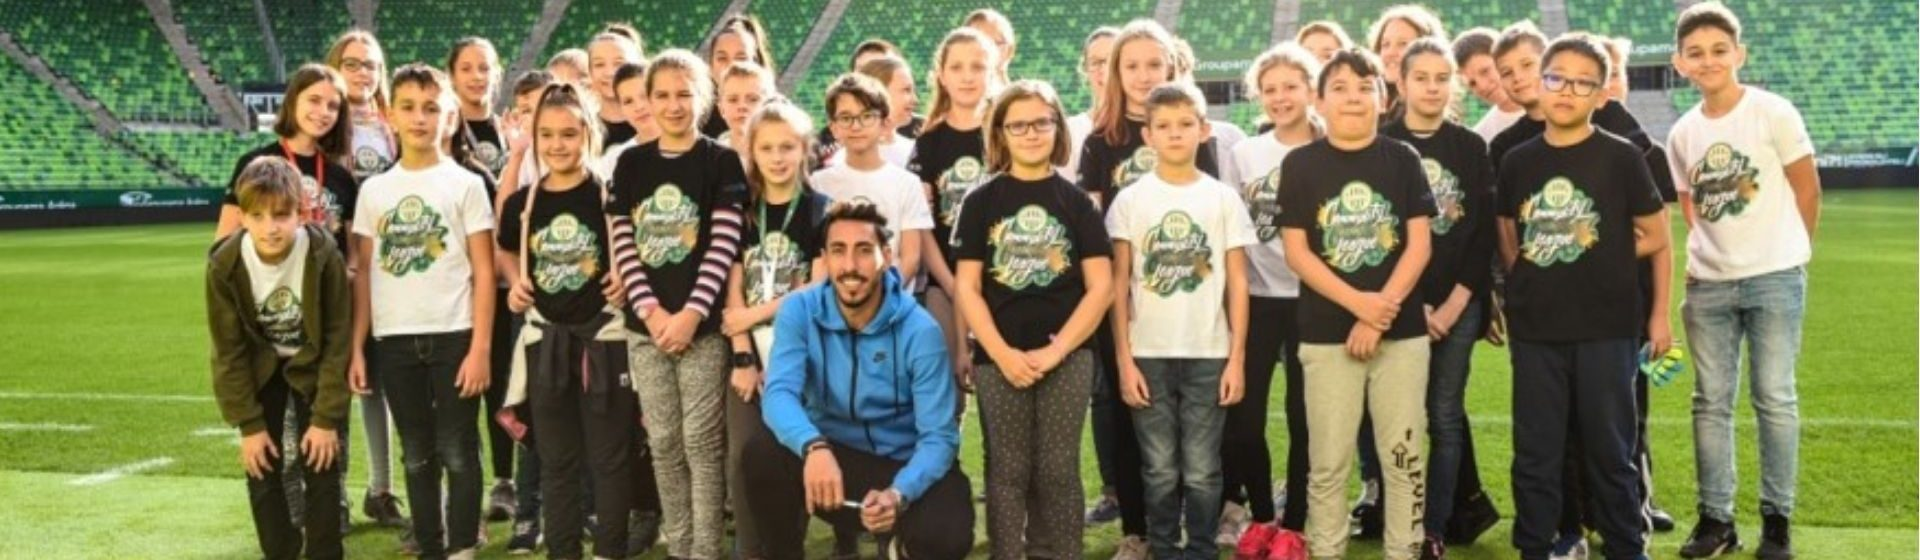 Community Champions League promotes physical activity and partnerships header